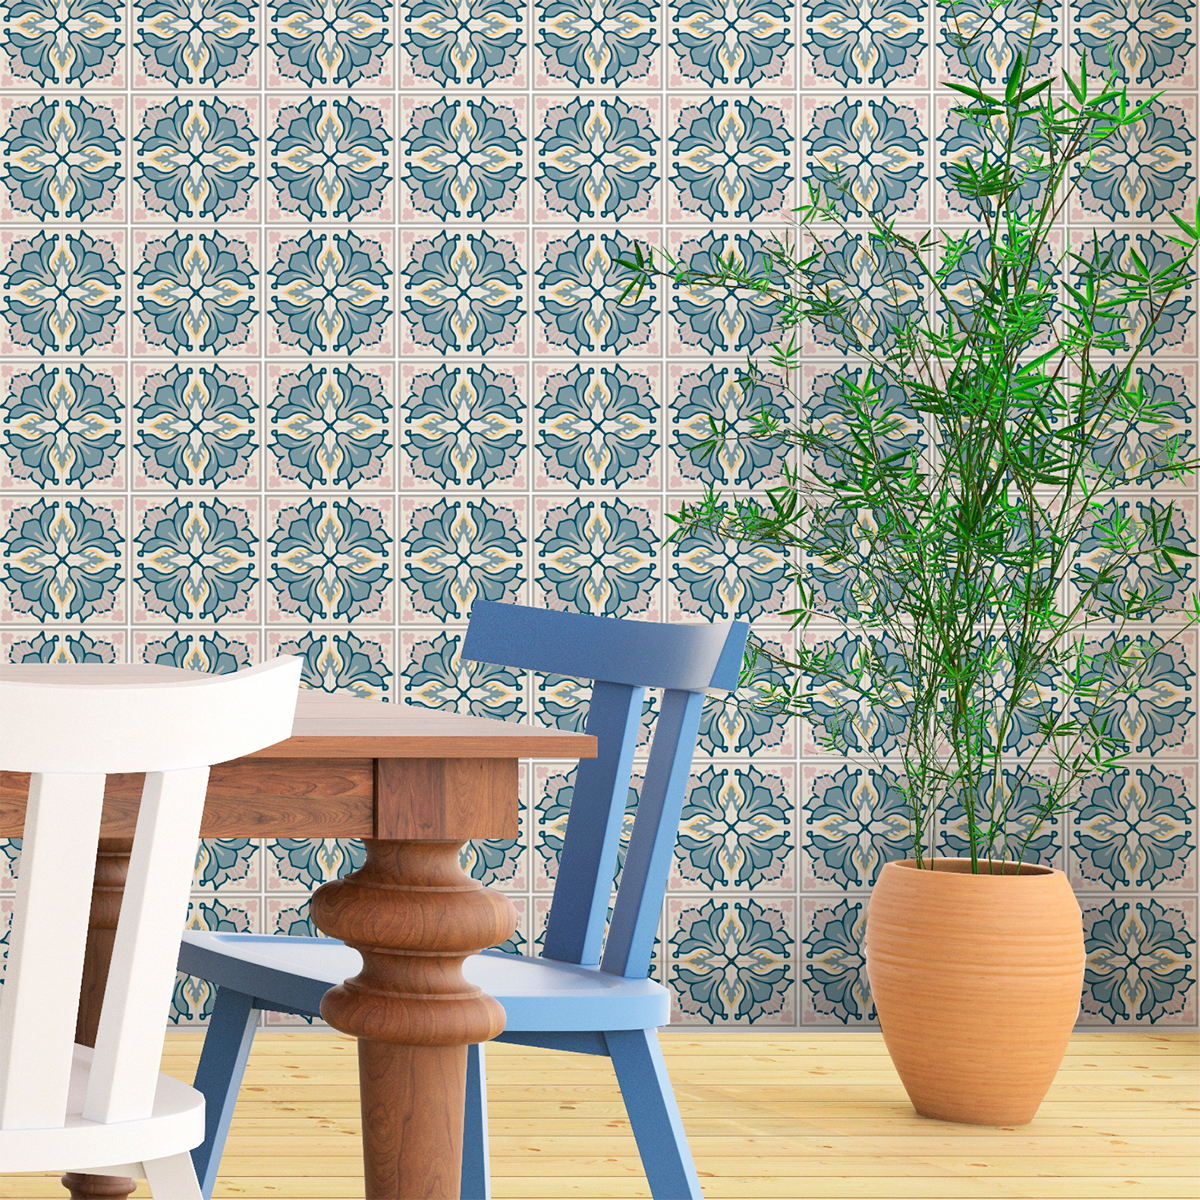 30 stickers carreaux de ciment azulejos aretha cuisine for Stickers carreaux de ciment cuisine